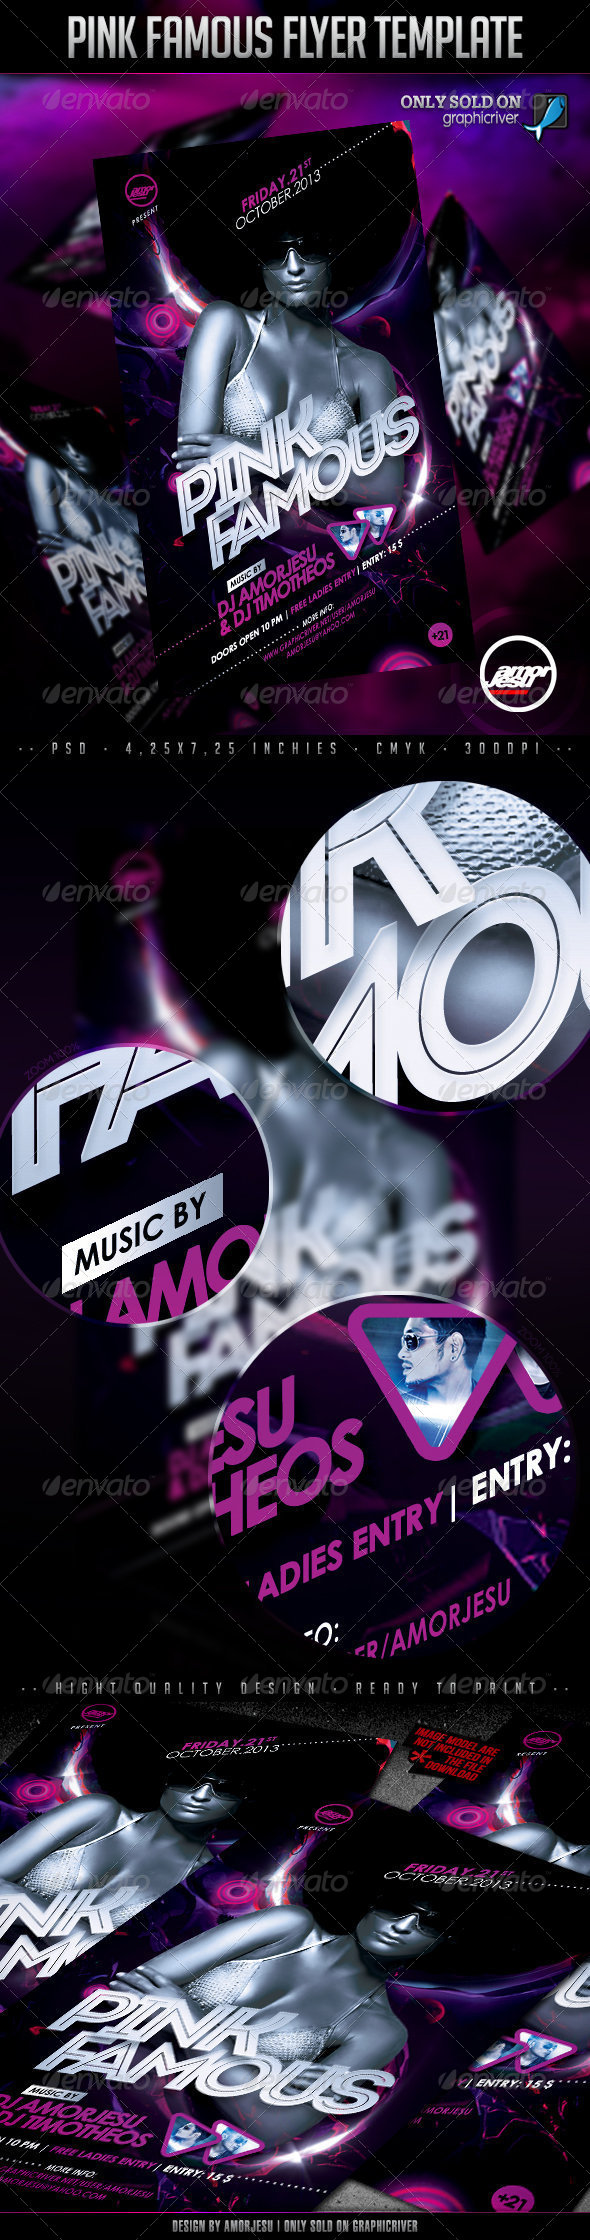 Pink Famous Flyer Template - Clubs & Parties Events